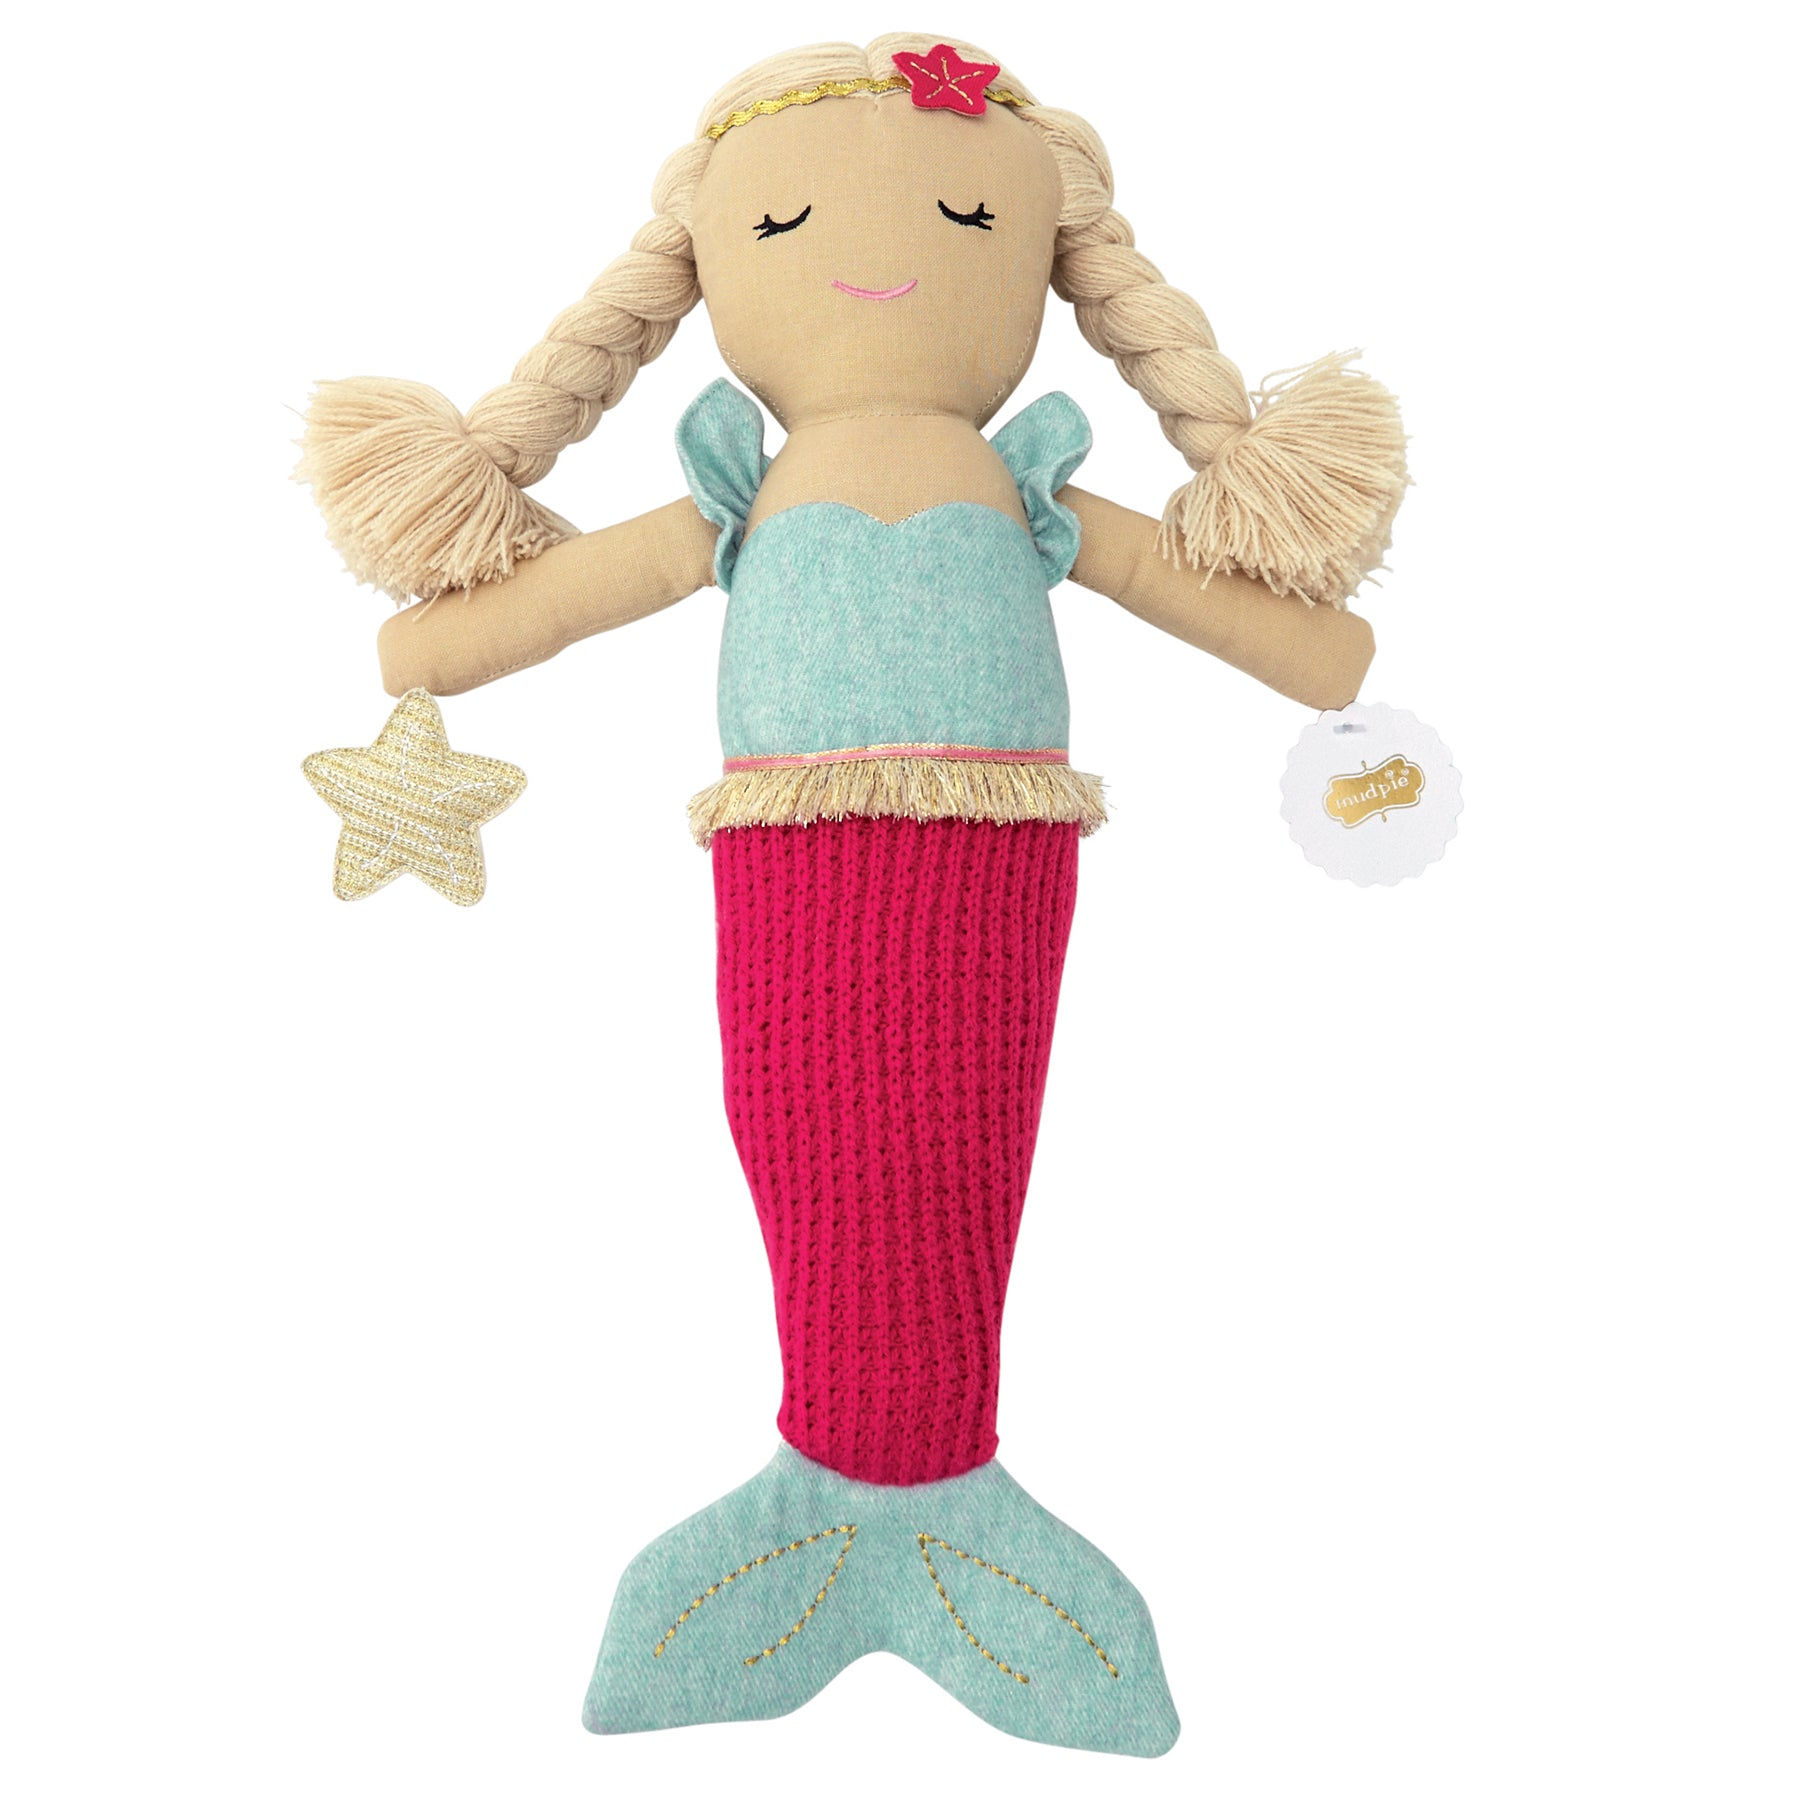 Plush Linen Mermaid Doll